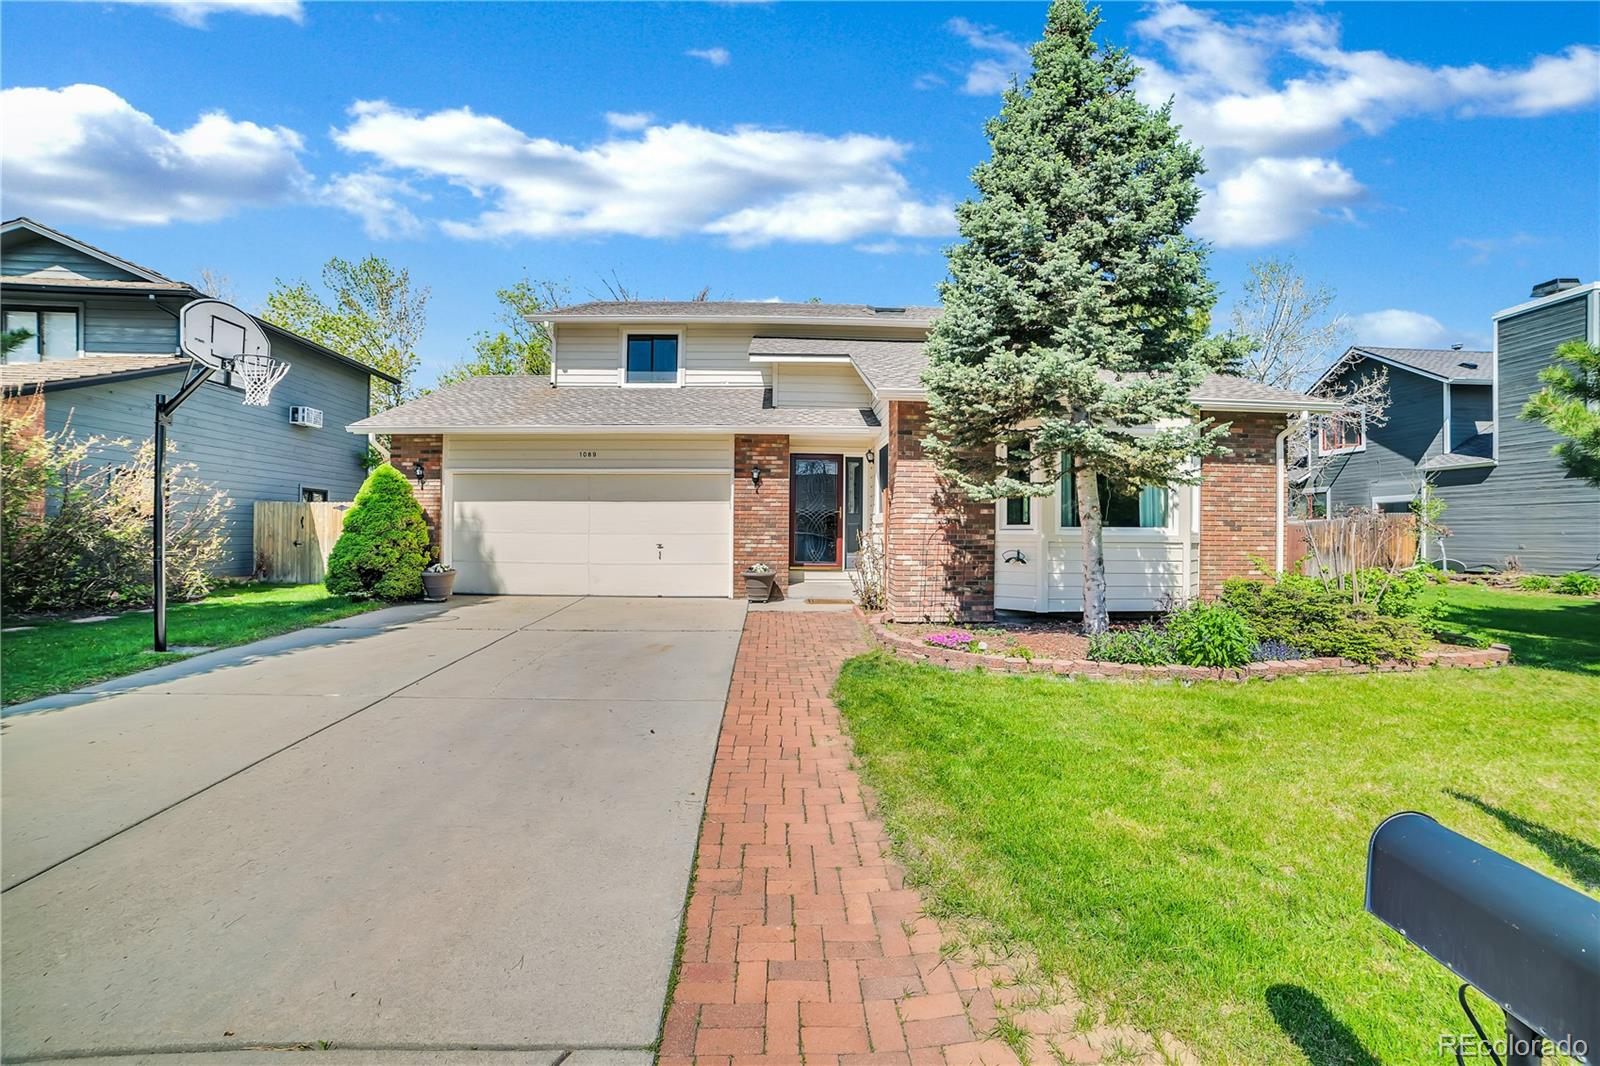 1089 W Willow Street Property Photo - Louisville, CO real estate listing